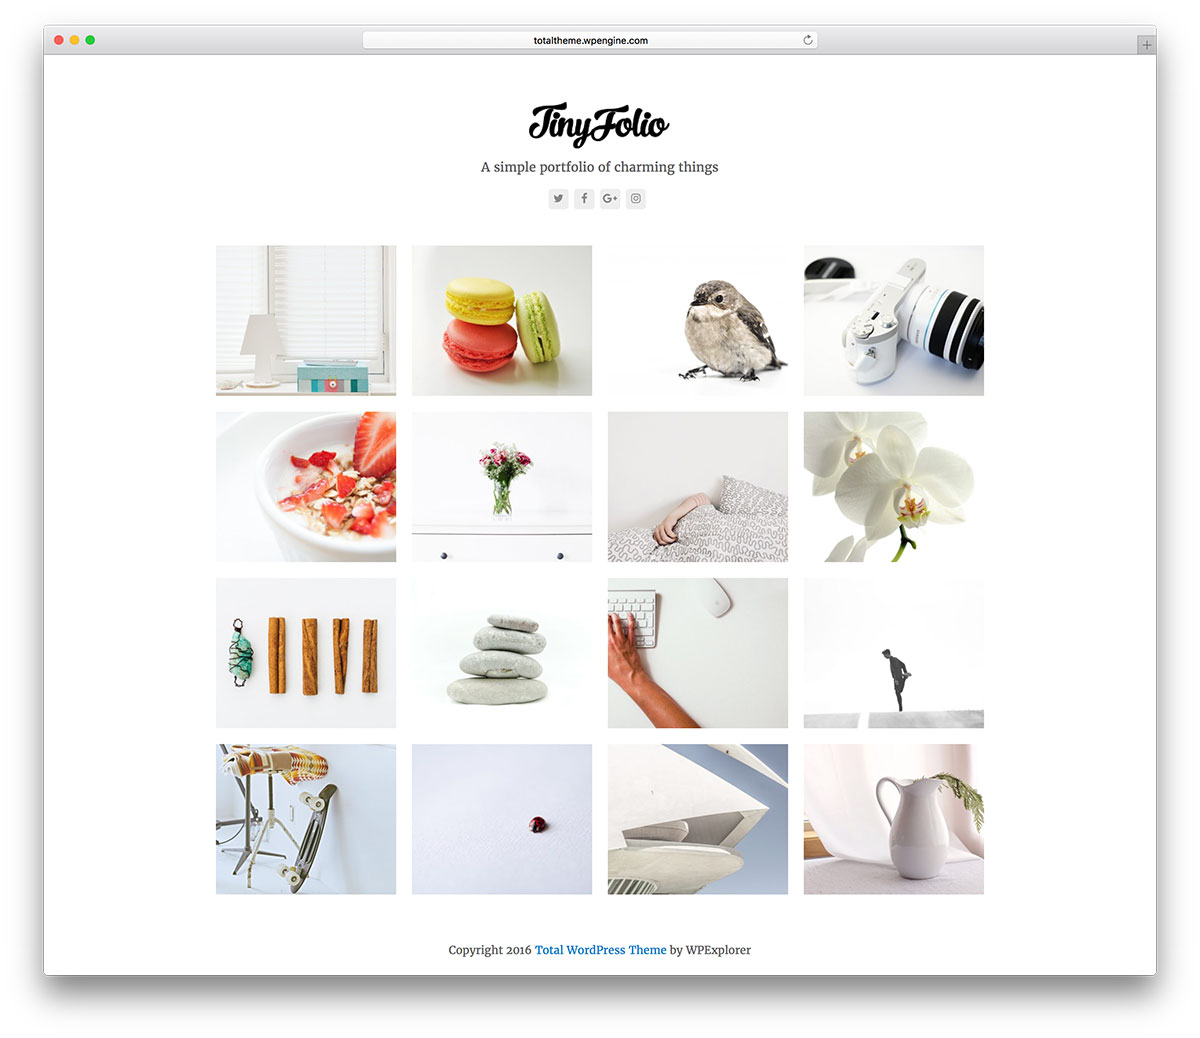 "total-clean-wordpress-portfolio-theme"" width=""1200"" height=""1038"" data-lazy-srcset=""https://webypress.fr/wp-content/uploads/2019/01/1548952940_526_64-meilleurs-thèmes-WordPress-Clean-2019.jpg 1200w, https://cdn.colorlib.com/wp/wp-content/uploads/sites/2/total-clean-wordpress-portfolio-theme-300x260.jpg 300w, https://cdn.colorlib.com/wp/wp-content/uploads/sites/2/total-clean-wordpress-portfolio-theme-768x664.jpg 768w, https://cdn.colorlib.com/wp/wp-content/uploads/sites/2/total-clean-wordpress-portfolio-theme-1024x886.jpg 1024w"" data-lazy-sizes=""(max-width: 1200px) 100vw, 1200px"" data-lazy-src=""https://webypress.fr/wp-content/uploads/2019/01/1548952940_526_64-meilleurs-thèmes-WordPress-Clean-2019.jpg?is-pending-load=1"" srcset=""data:image/gif;base64,R0lGODlhAQABAIAAAAAAAP///yH5BAEAAAAALAAAAAABAAEAAAIBRAA7""/></p> <p><noscript><img class="